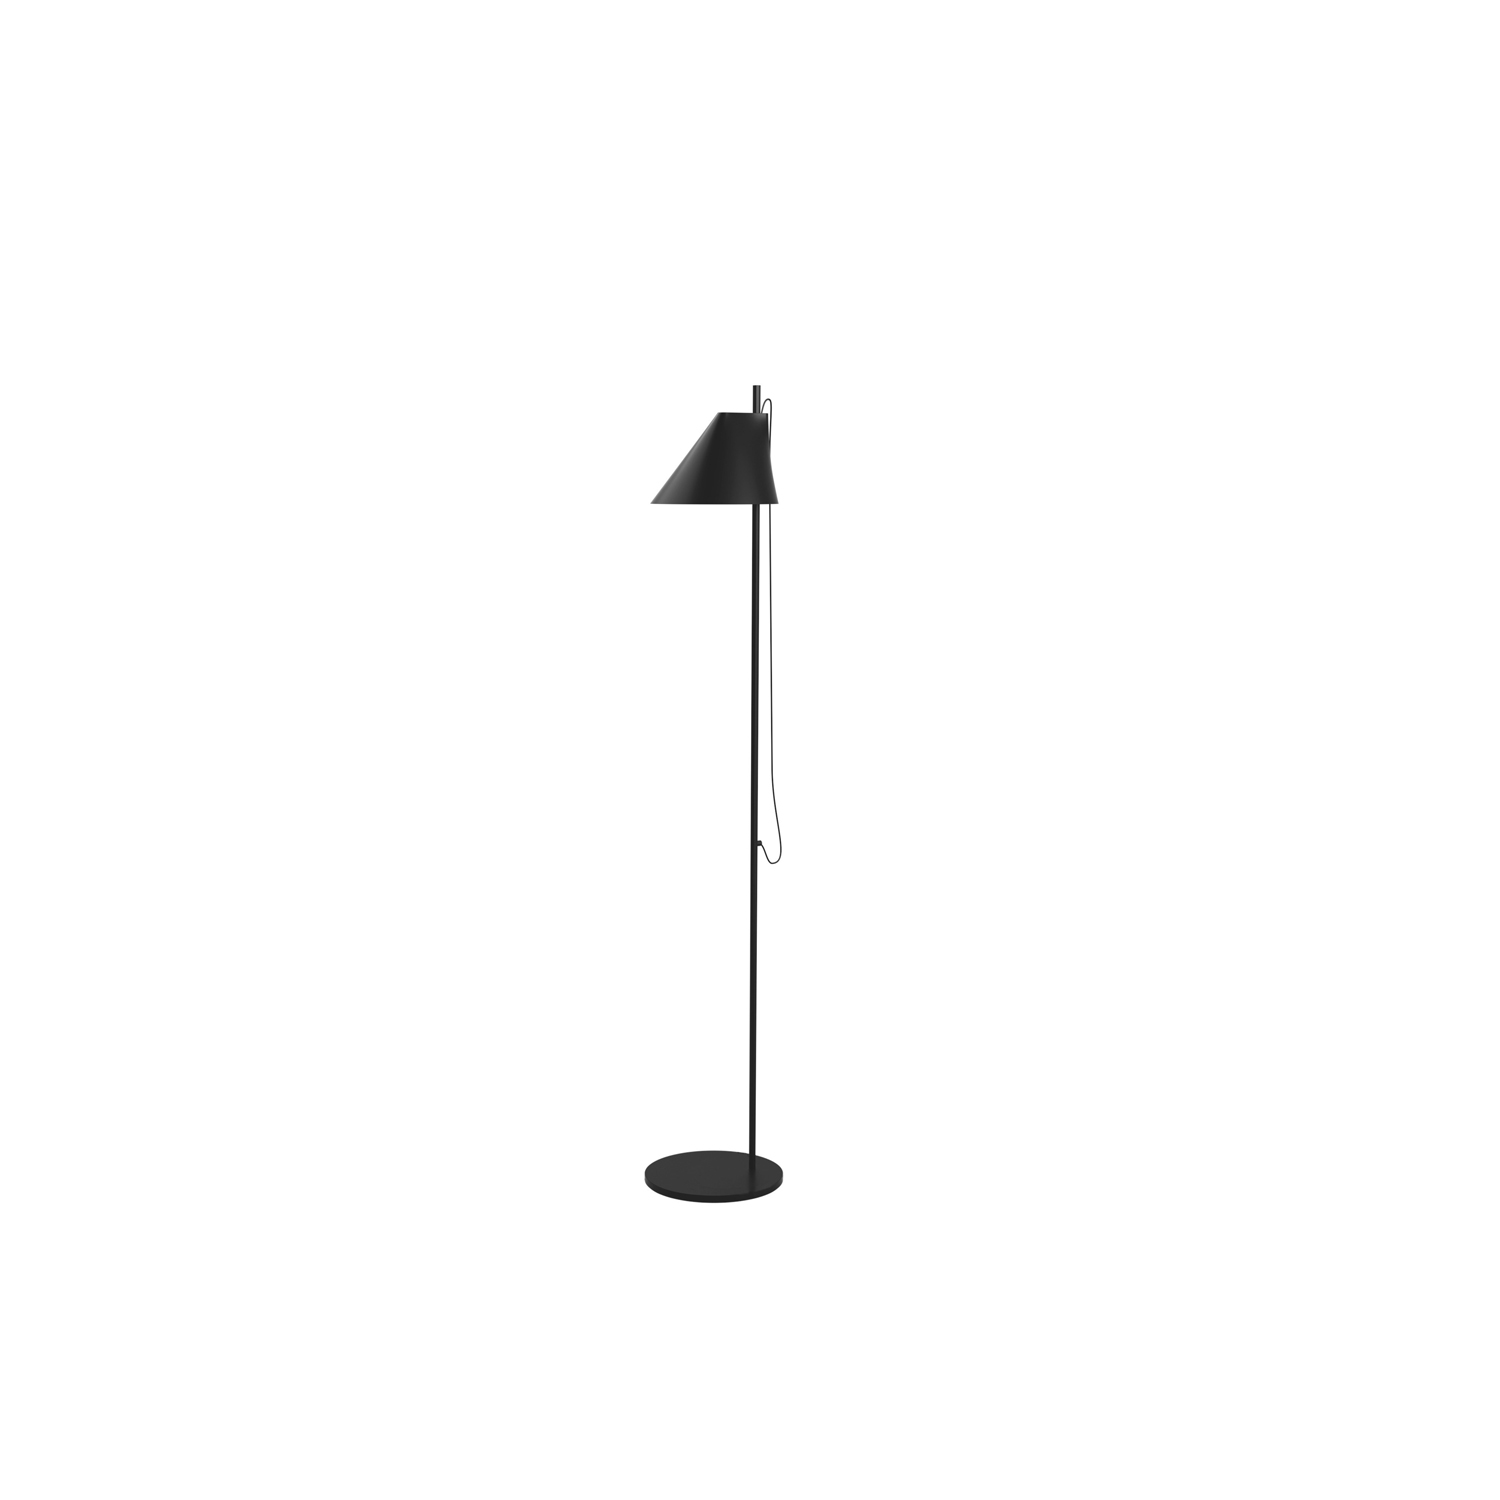 YUH Floor Light - The fixture primarily provides direct glare-free downward directed light. The angle of the shade can be adjusted to optimize light distribution. A slim opening in the top of the shade provides soft, ambient upward illumination. A mechanical system provides great freedom of movement, so the light can always be set in the ideal position in the workspace, living room etc. Build-in LED technology provides a high quality of light with stepless dimming at 15 to 100%. Timer function to automatically turn off the light after amount of time, selectable between off/4 hours/8 hours. Function to set a fixed light level each time the lamp is connected to main power. In the upper part of the tube a button acts as switch and dimmer. | Matter of Stuff